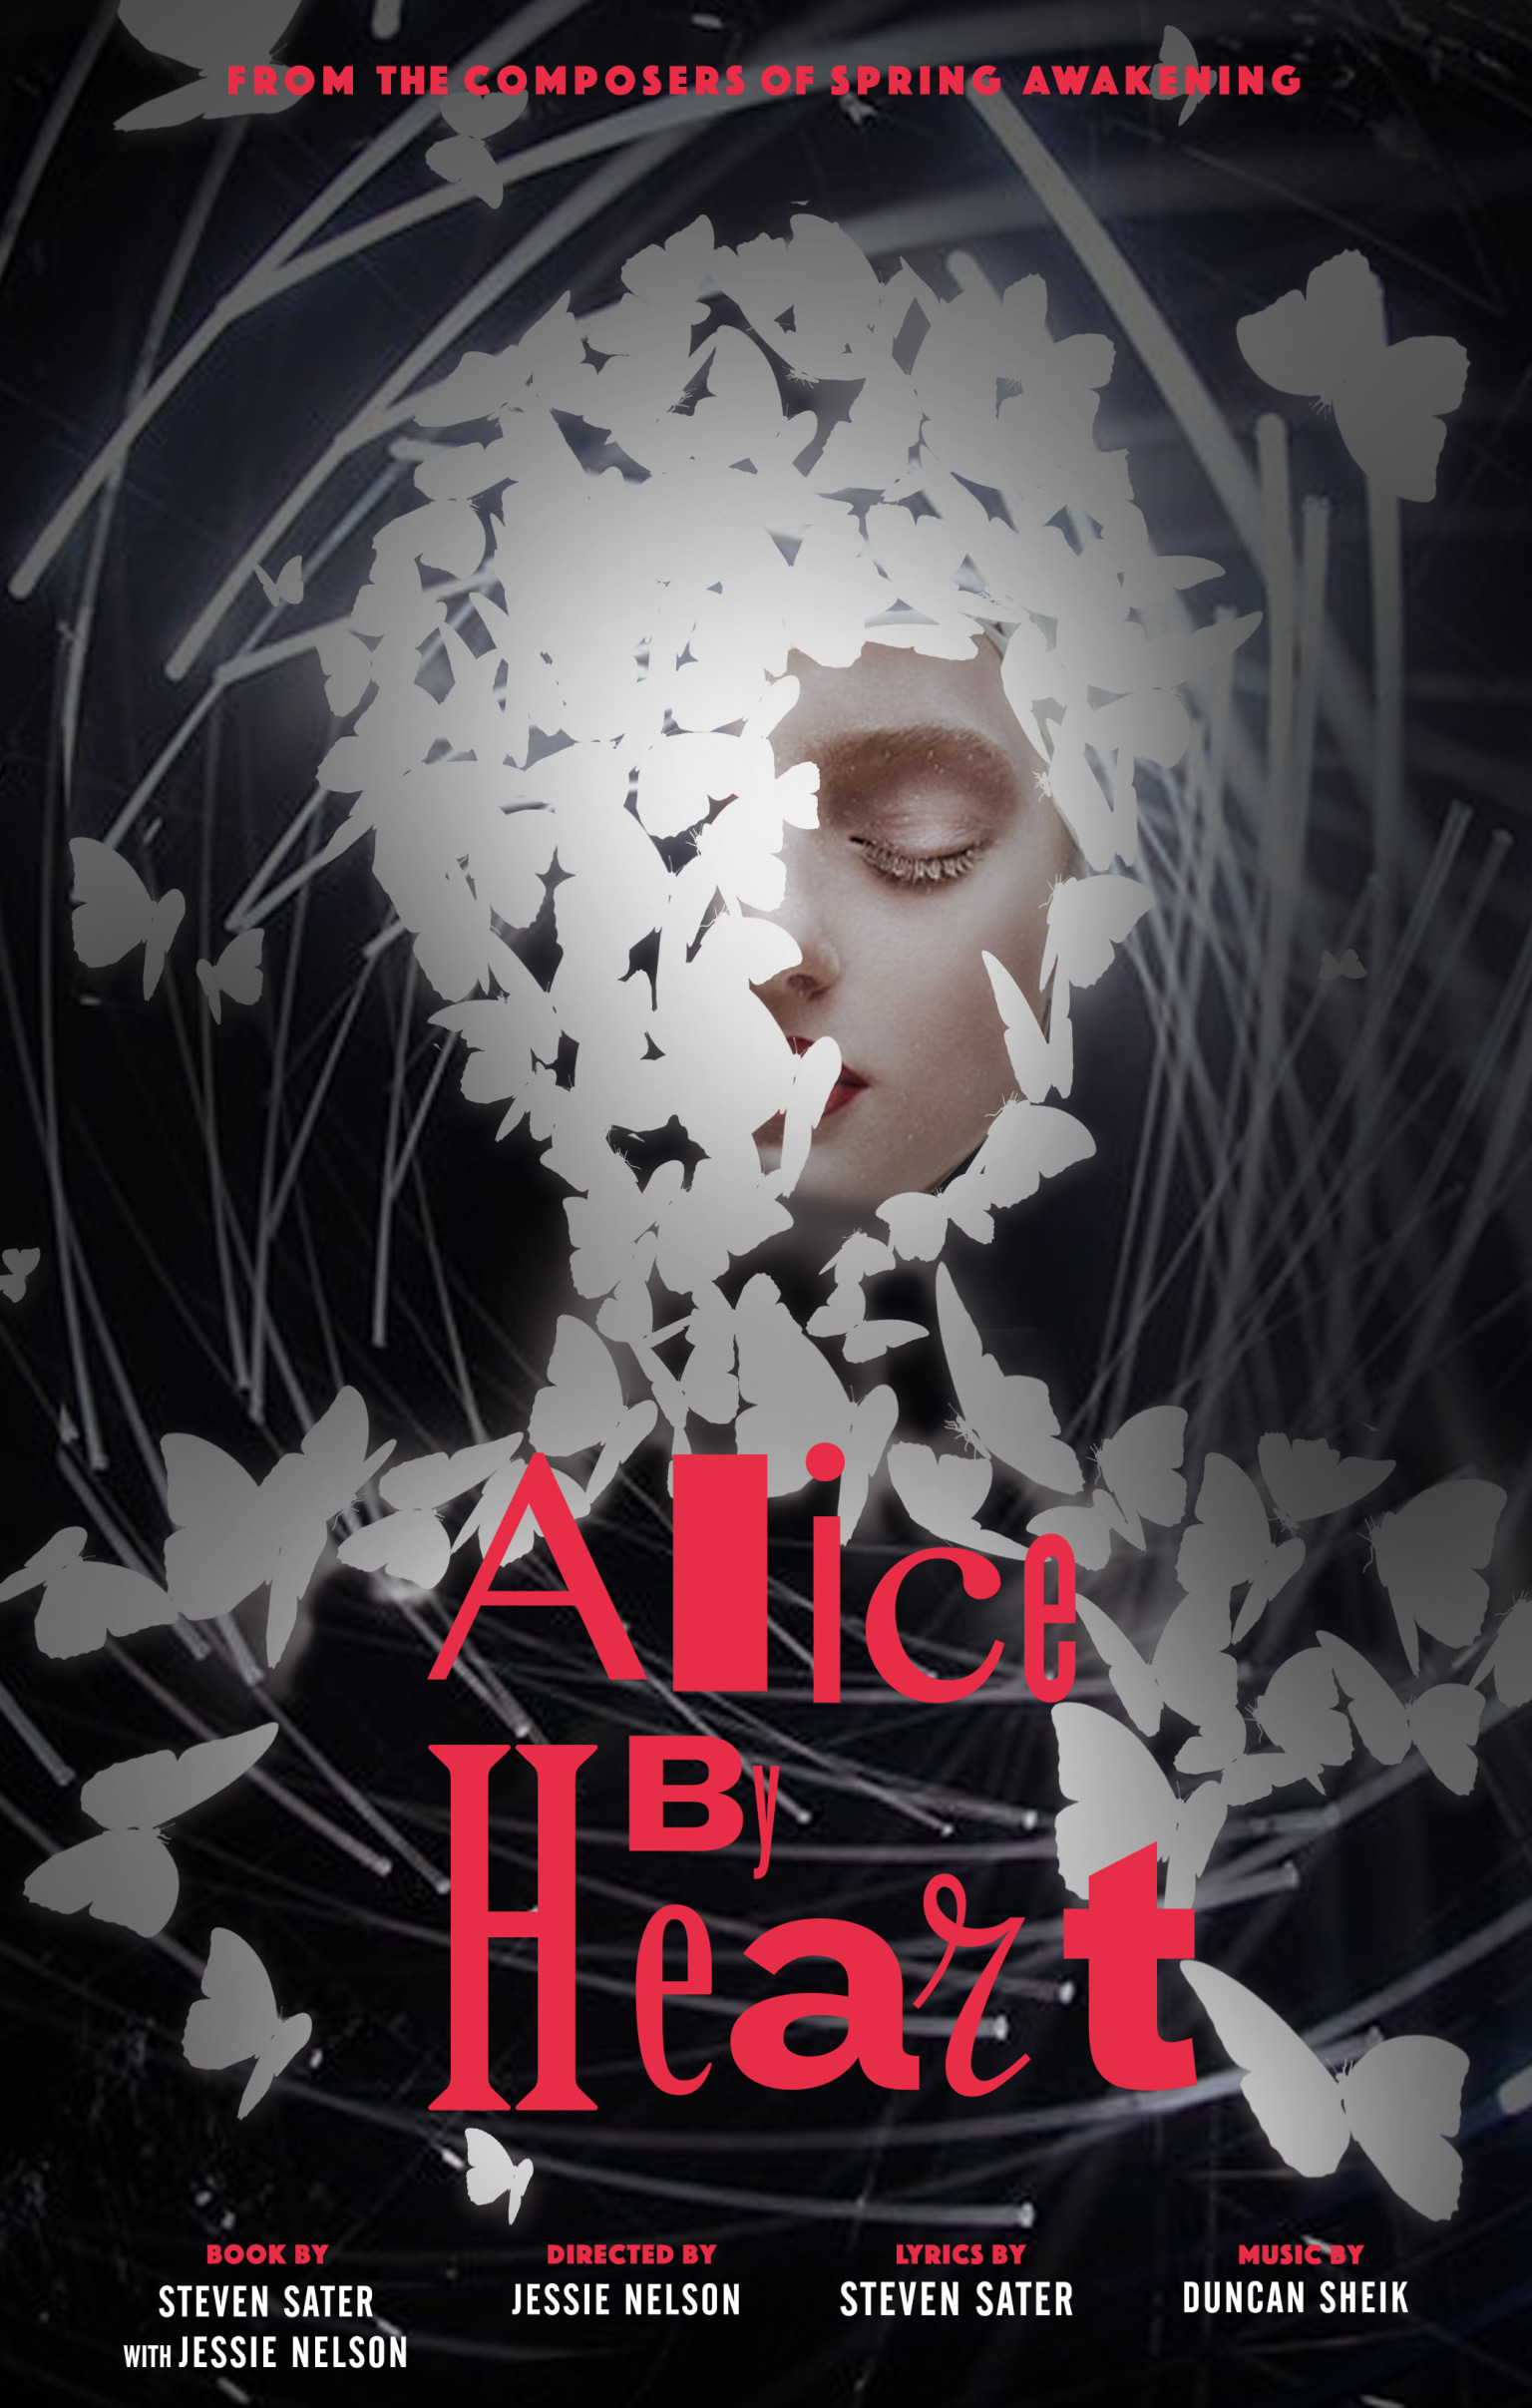 Alice by Heart: Key Art Concepts